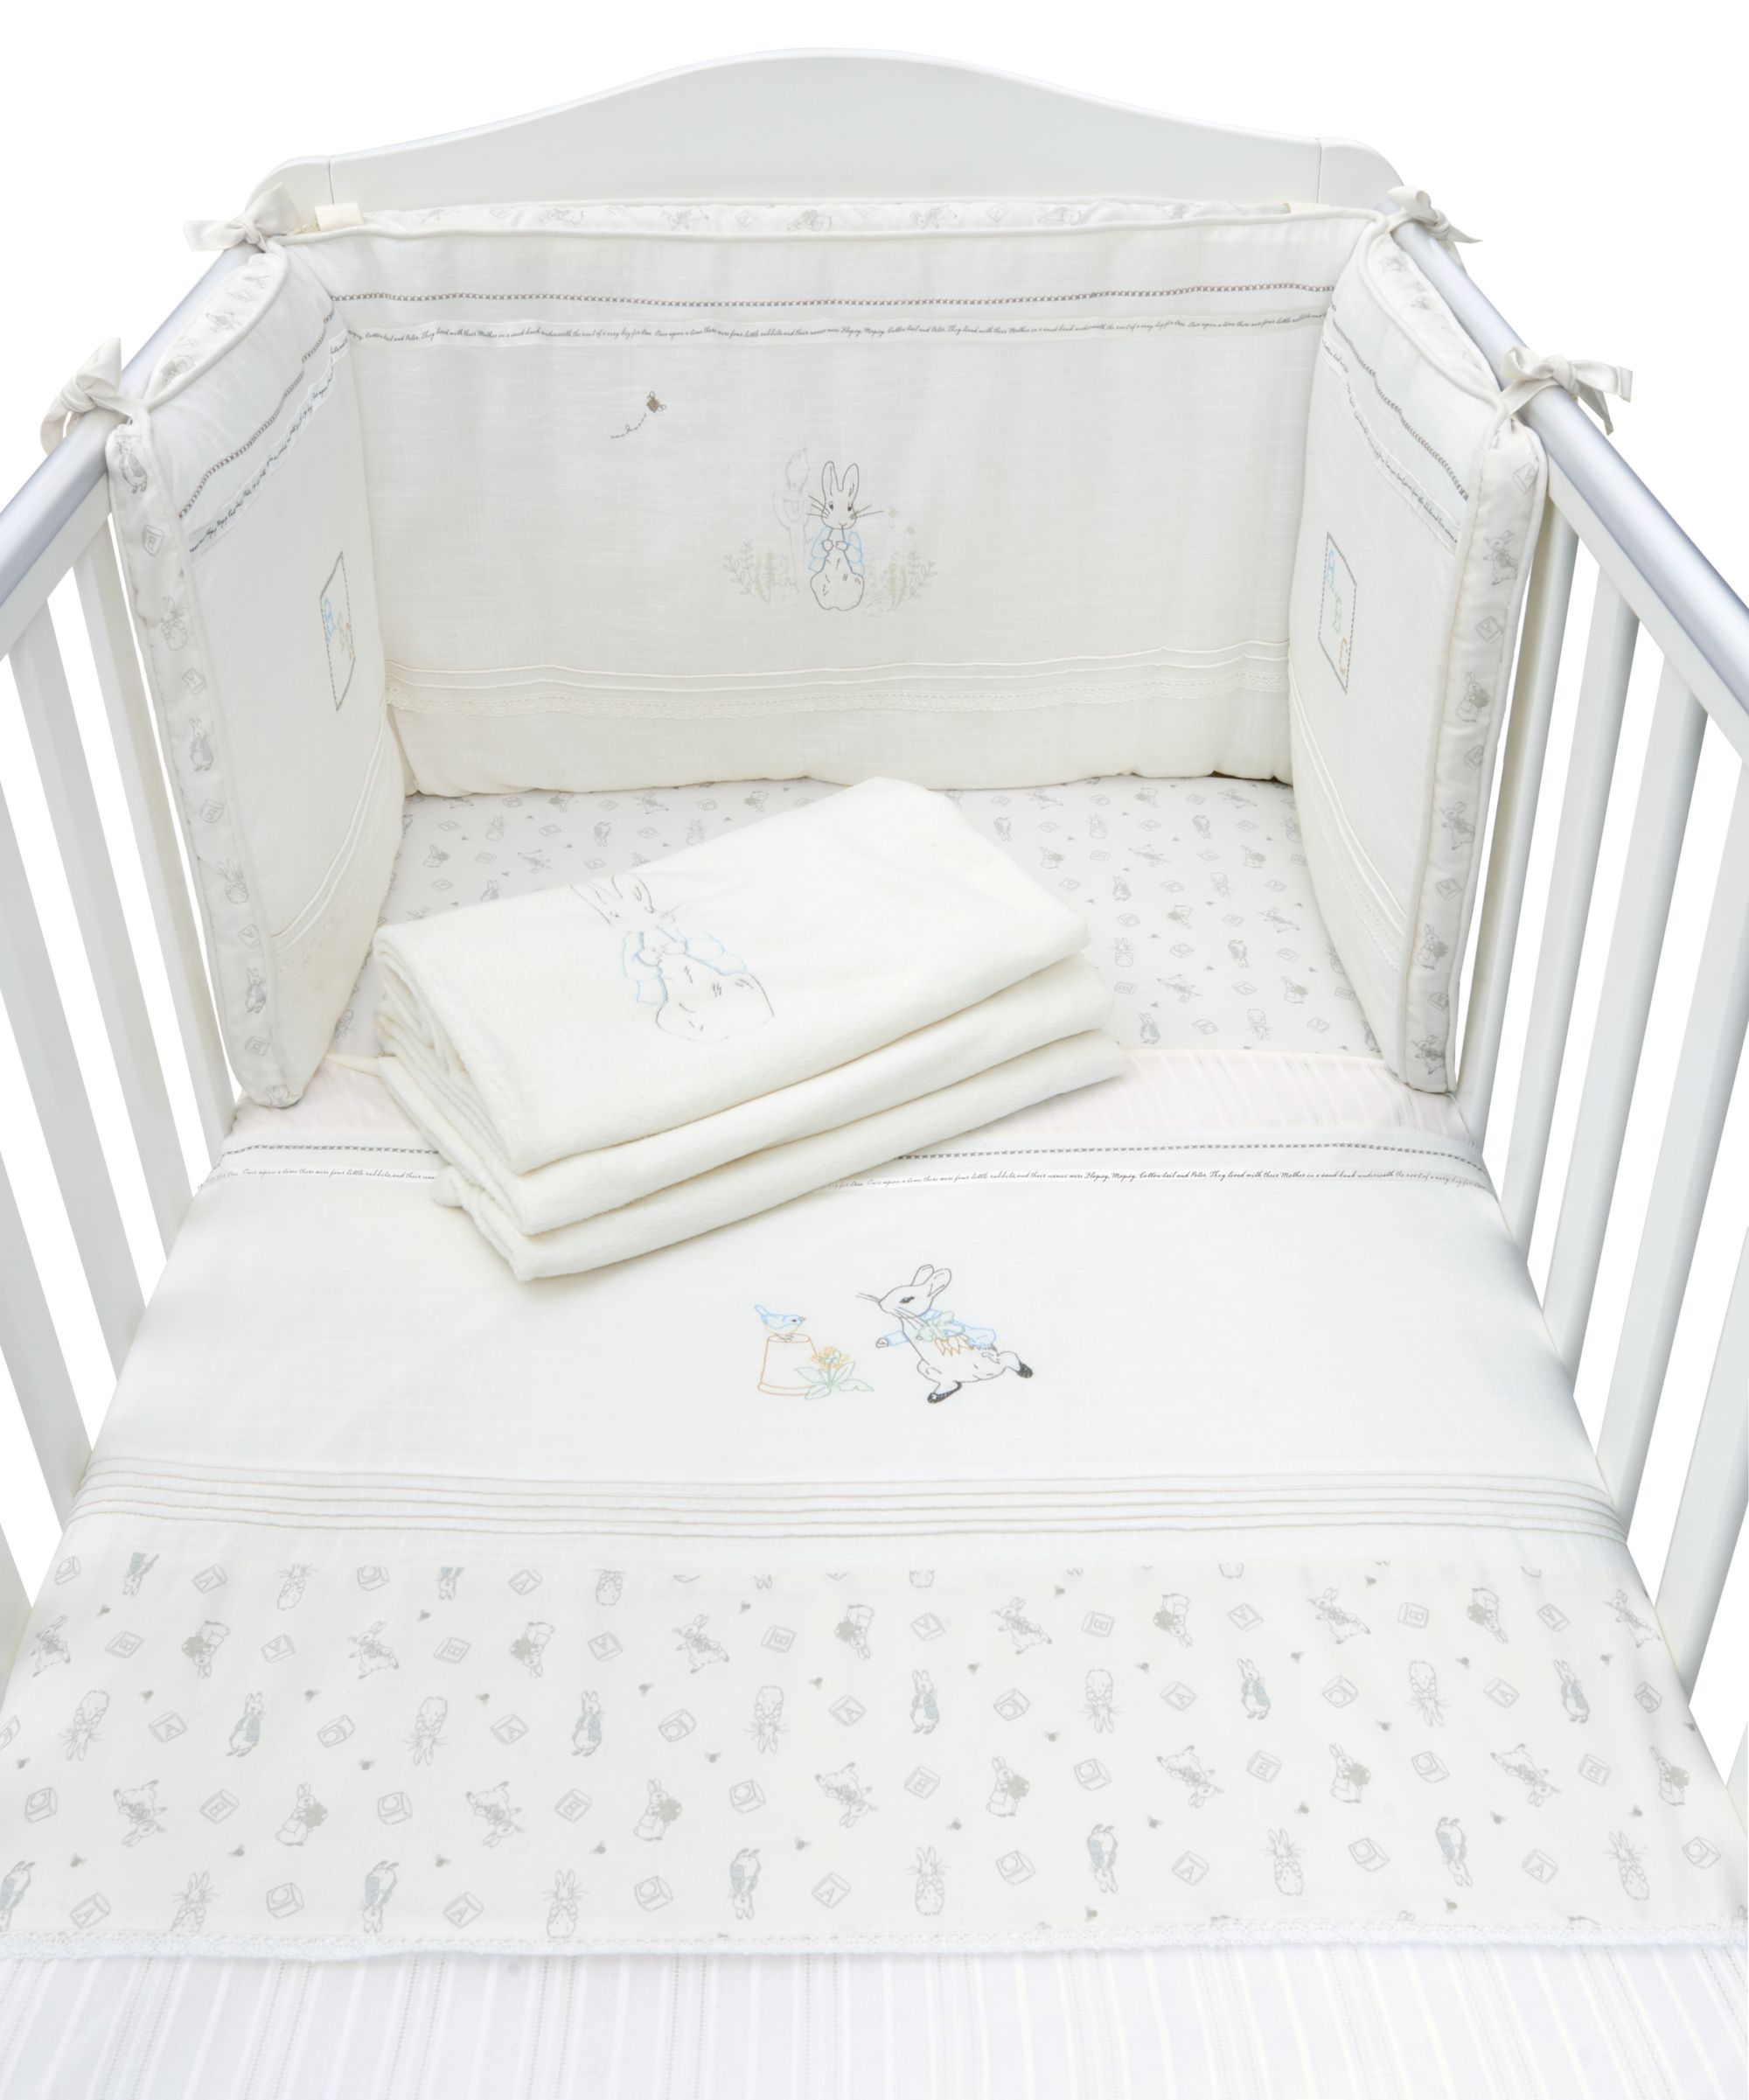 Peter Rabbit Bed In A Bag Exclusively From Mothercare